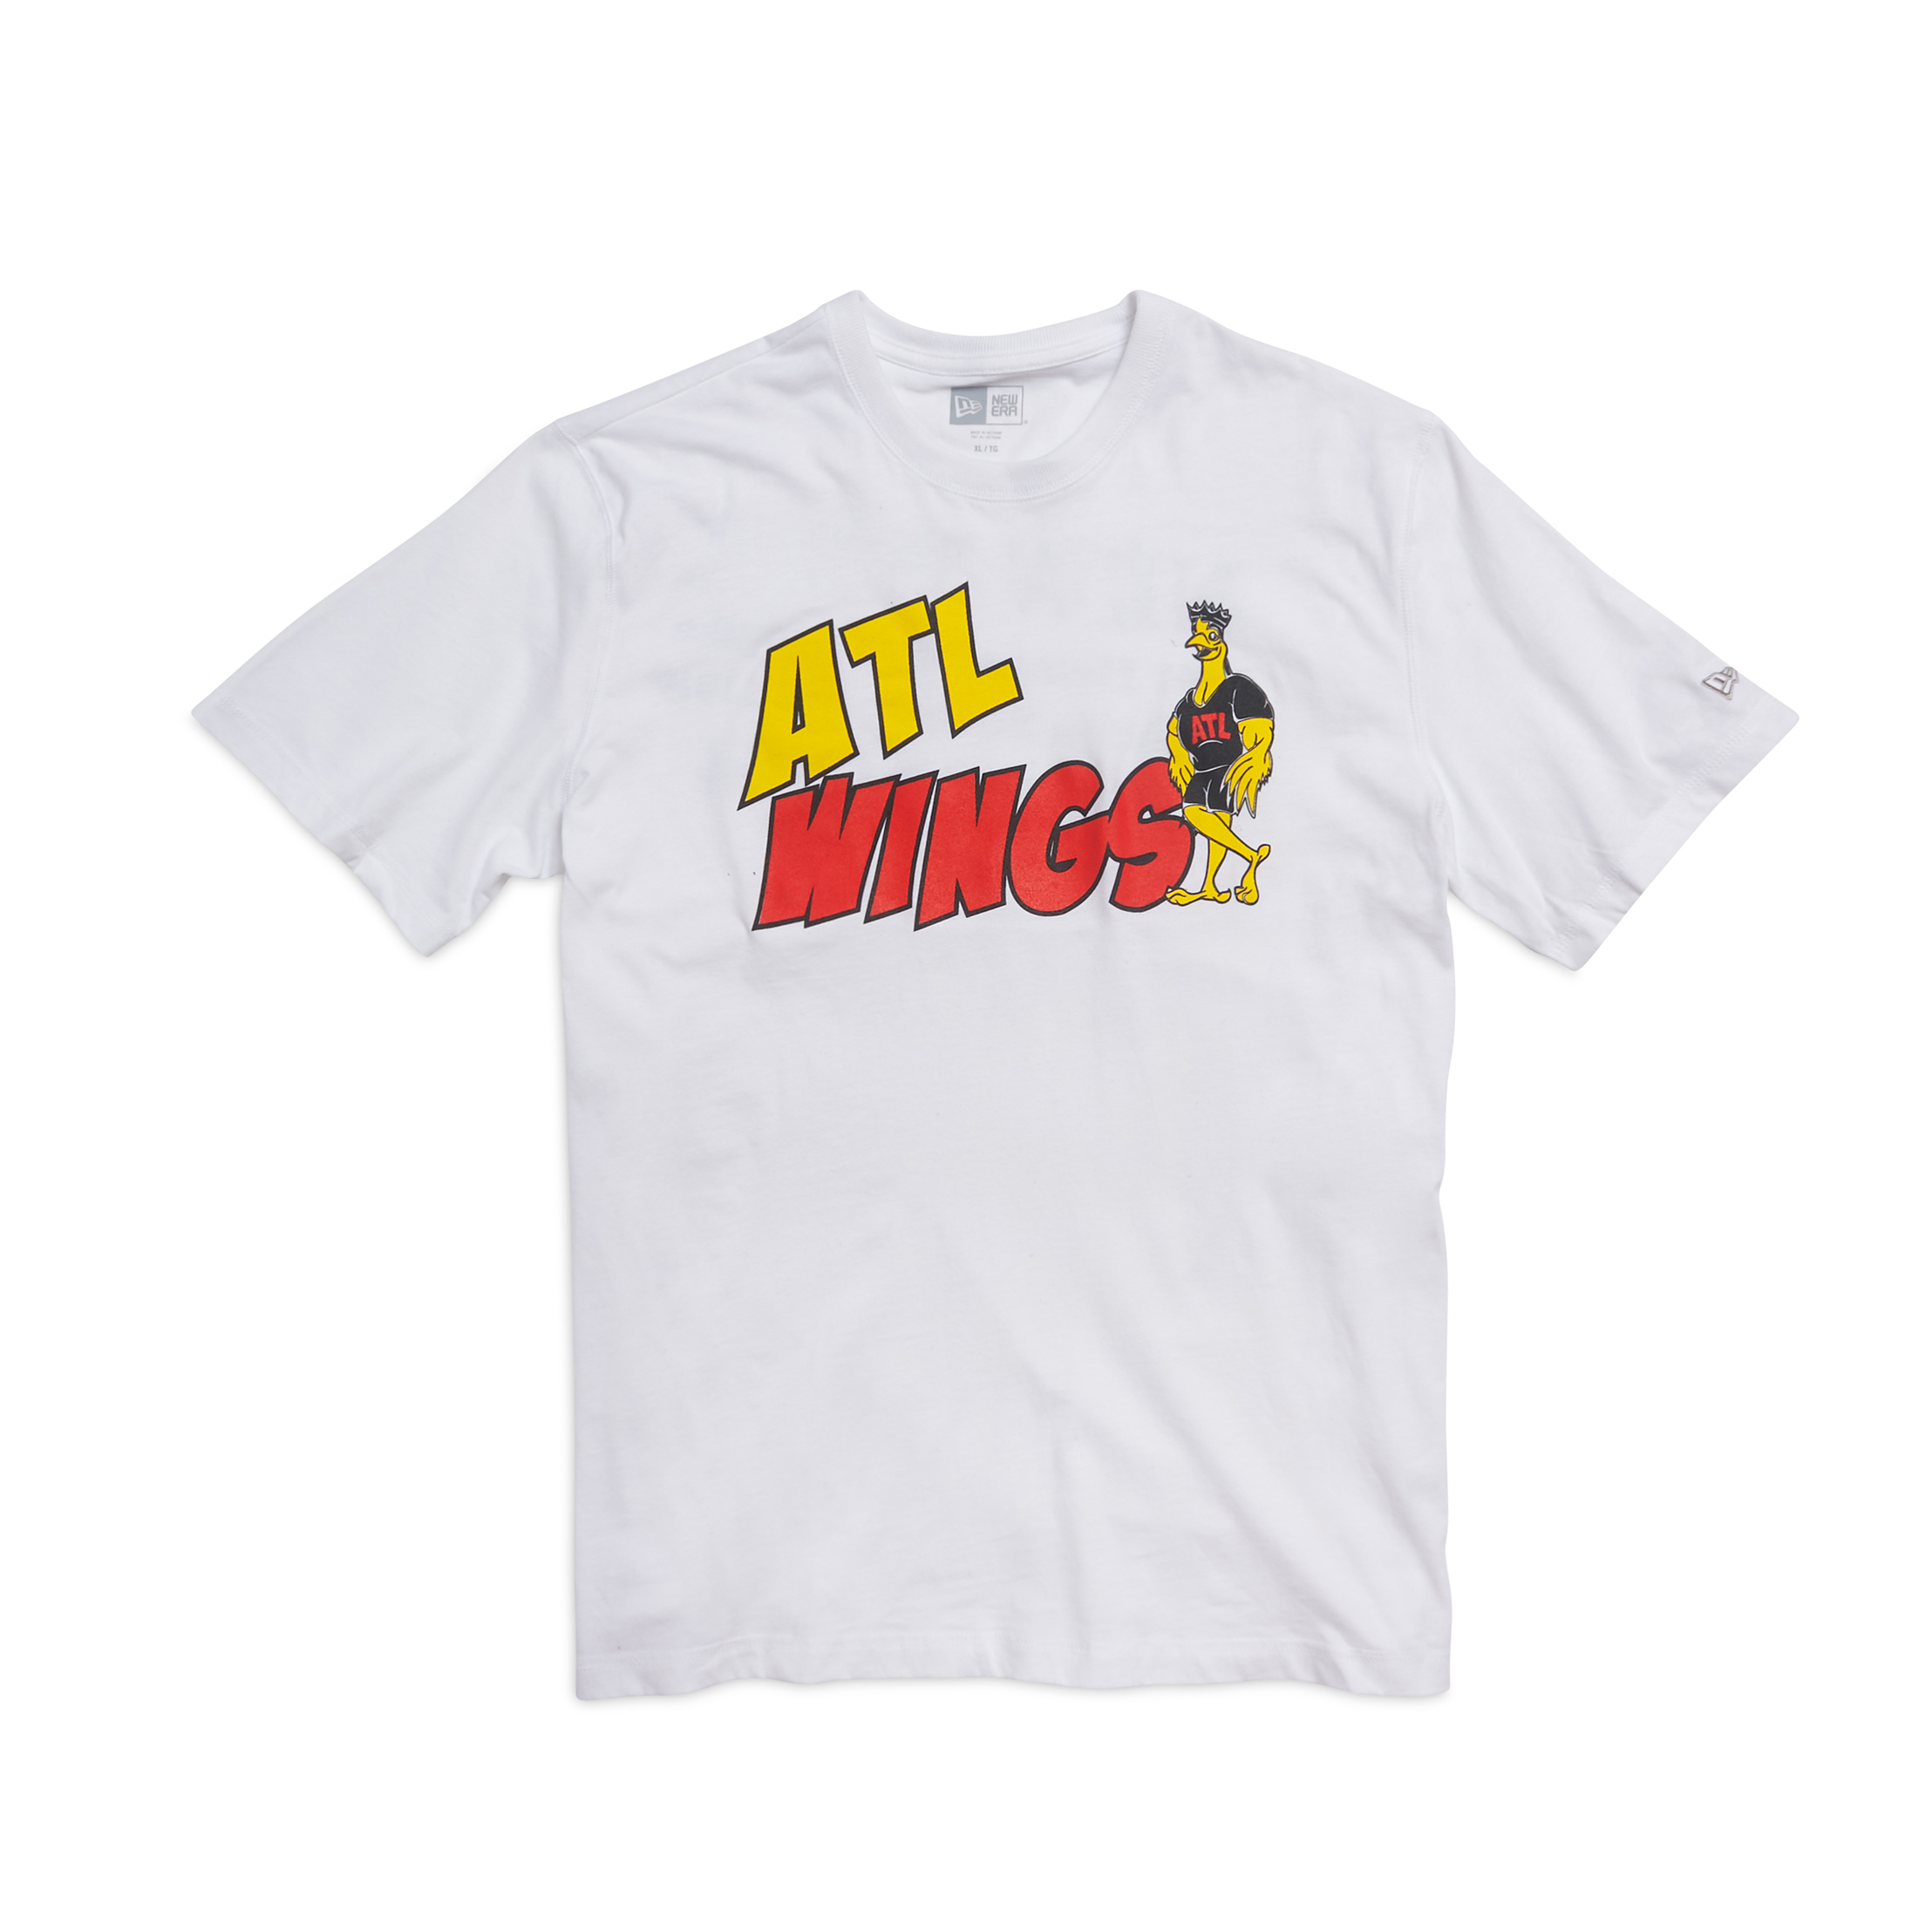 atl-wings-t-shirt-front